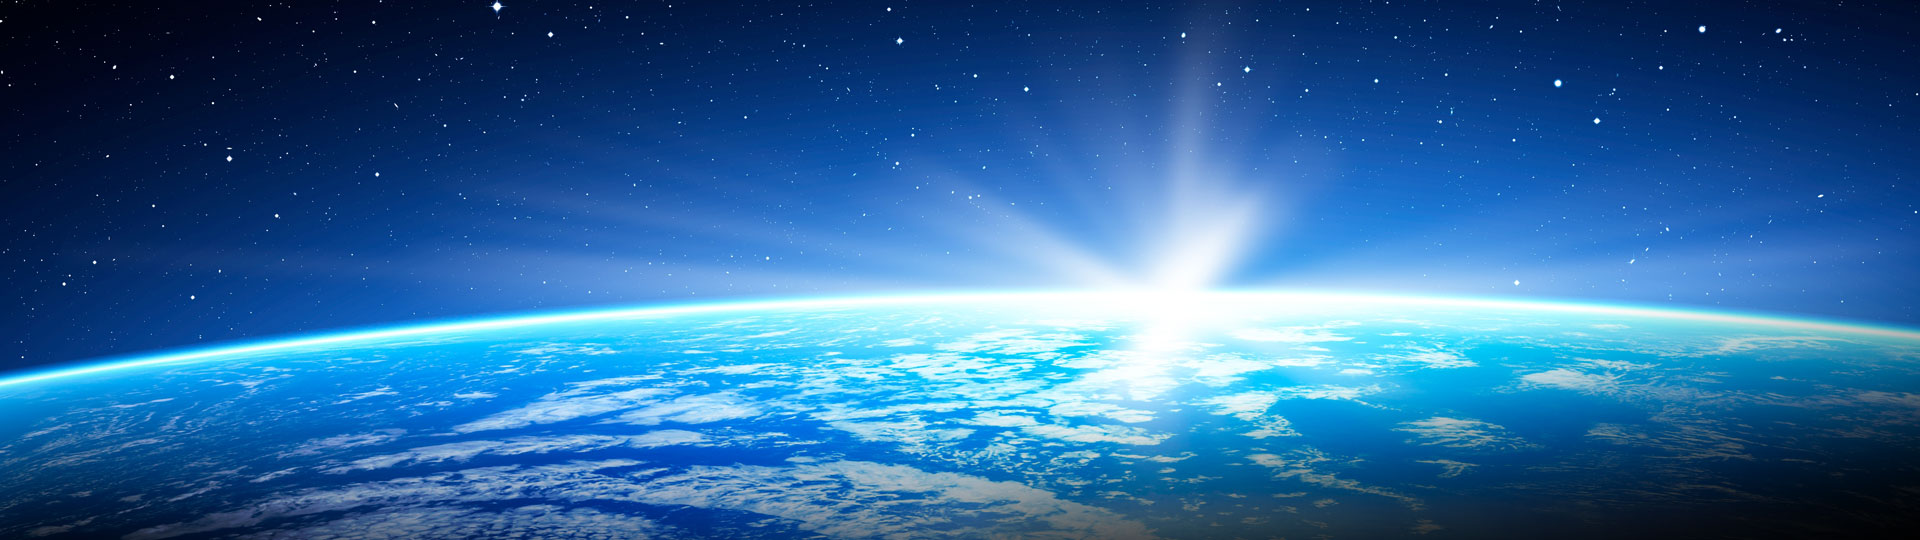 outer space and earth background